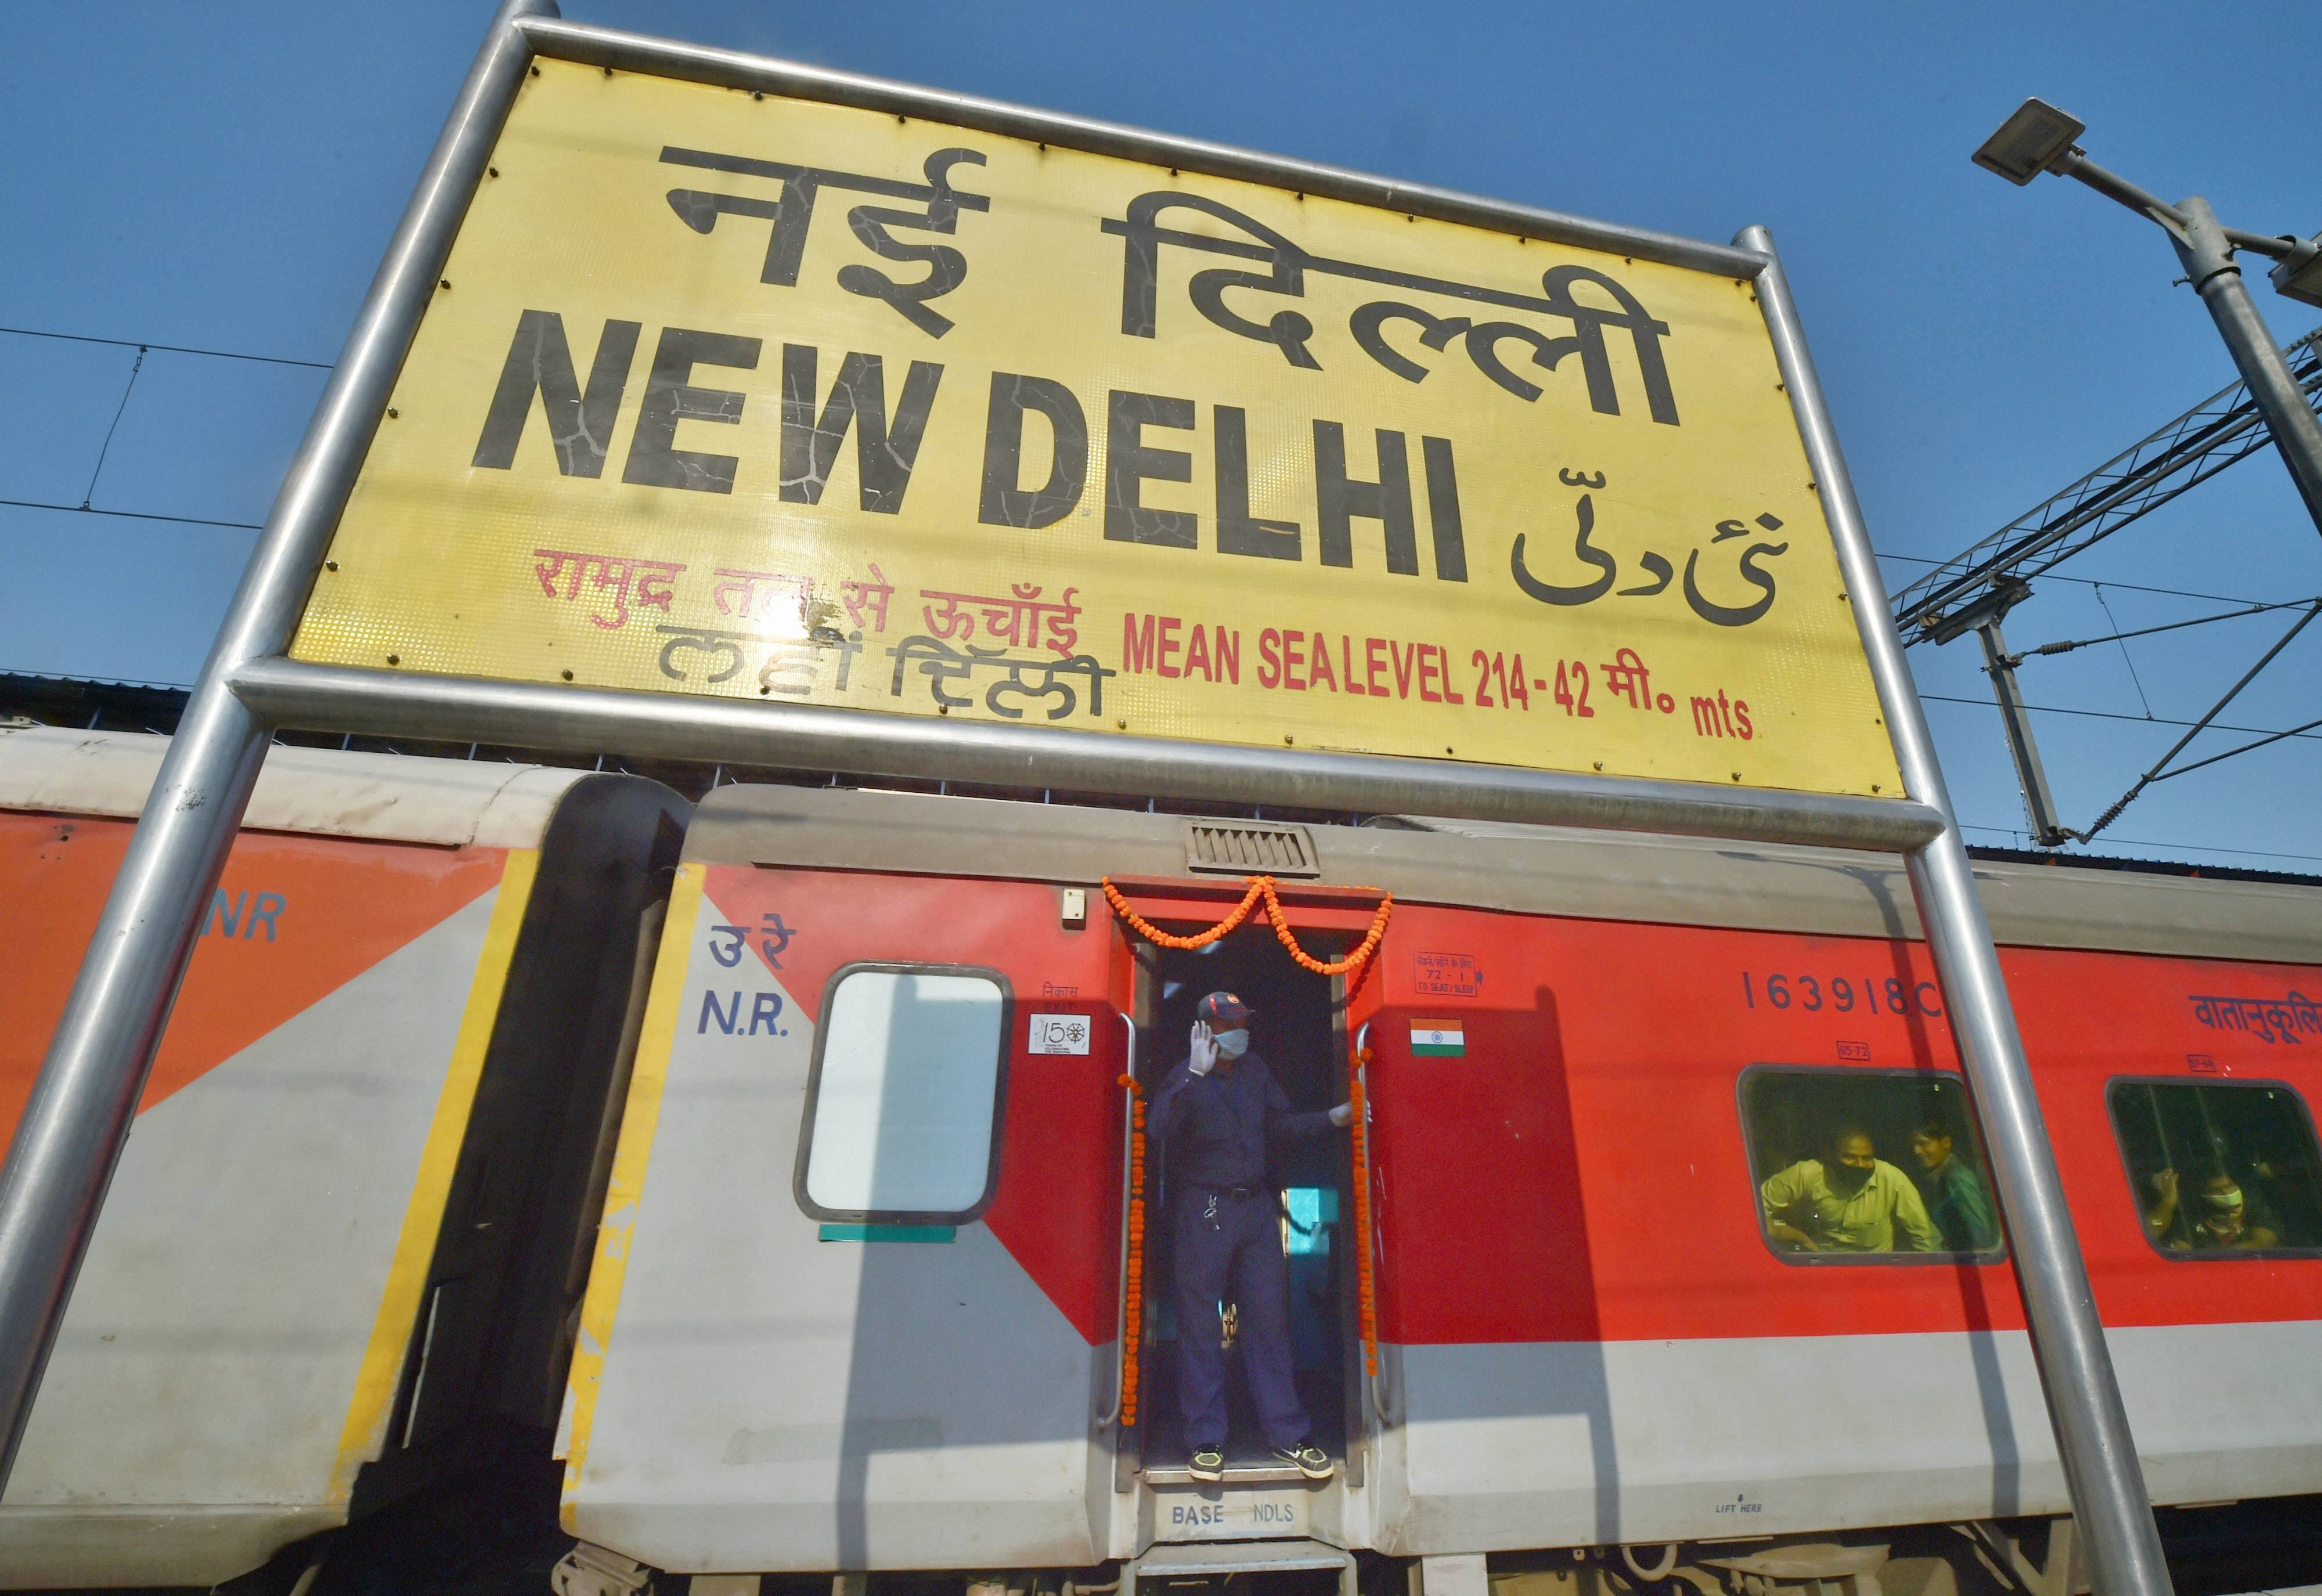 The New Delhi Station, is going to be developed into an international railway station with airport-like infrastructure